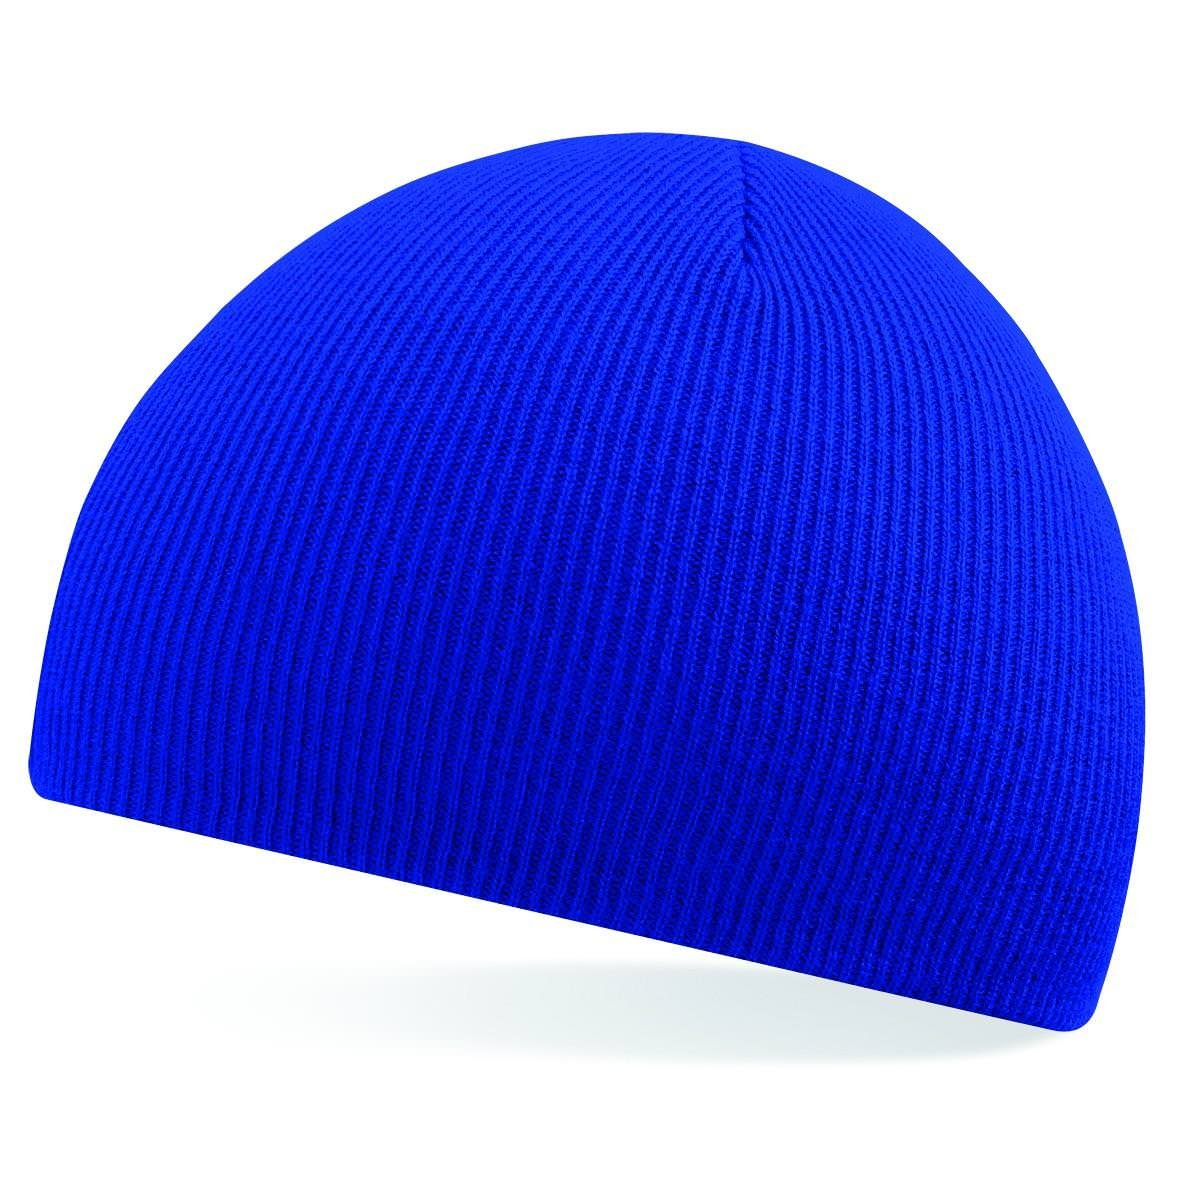 Pullon Beanie from Beechfield - Choose From 11 Colours